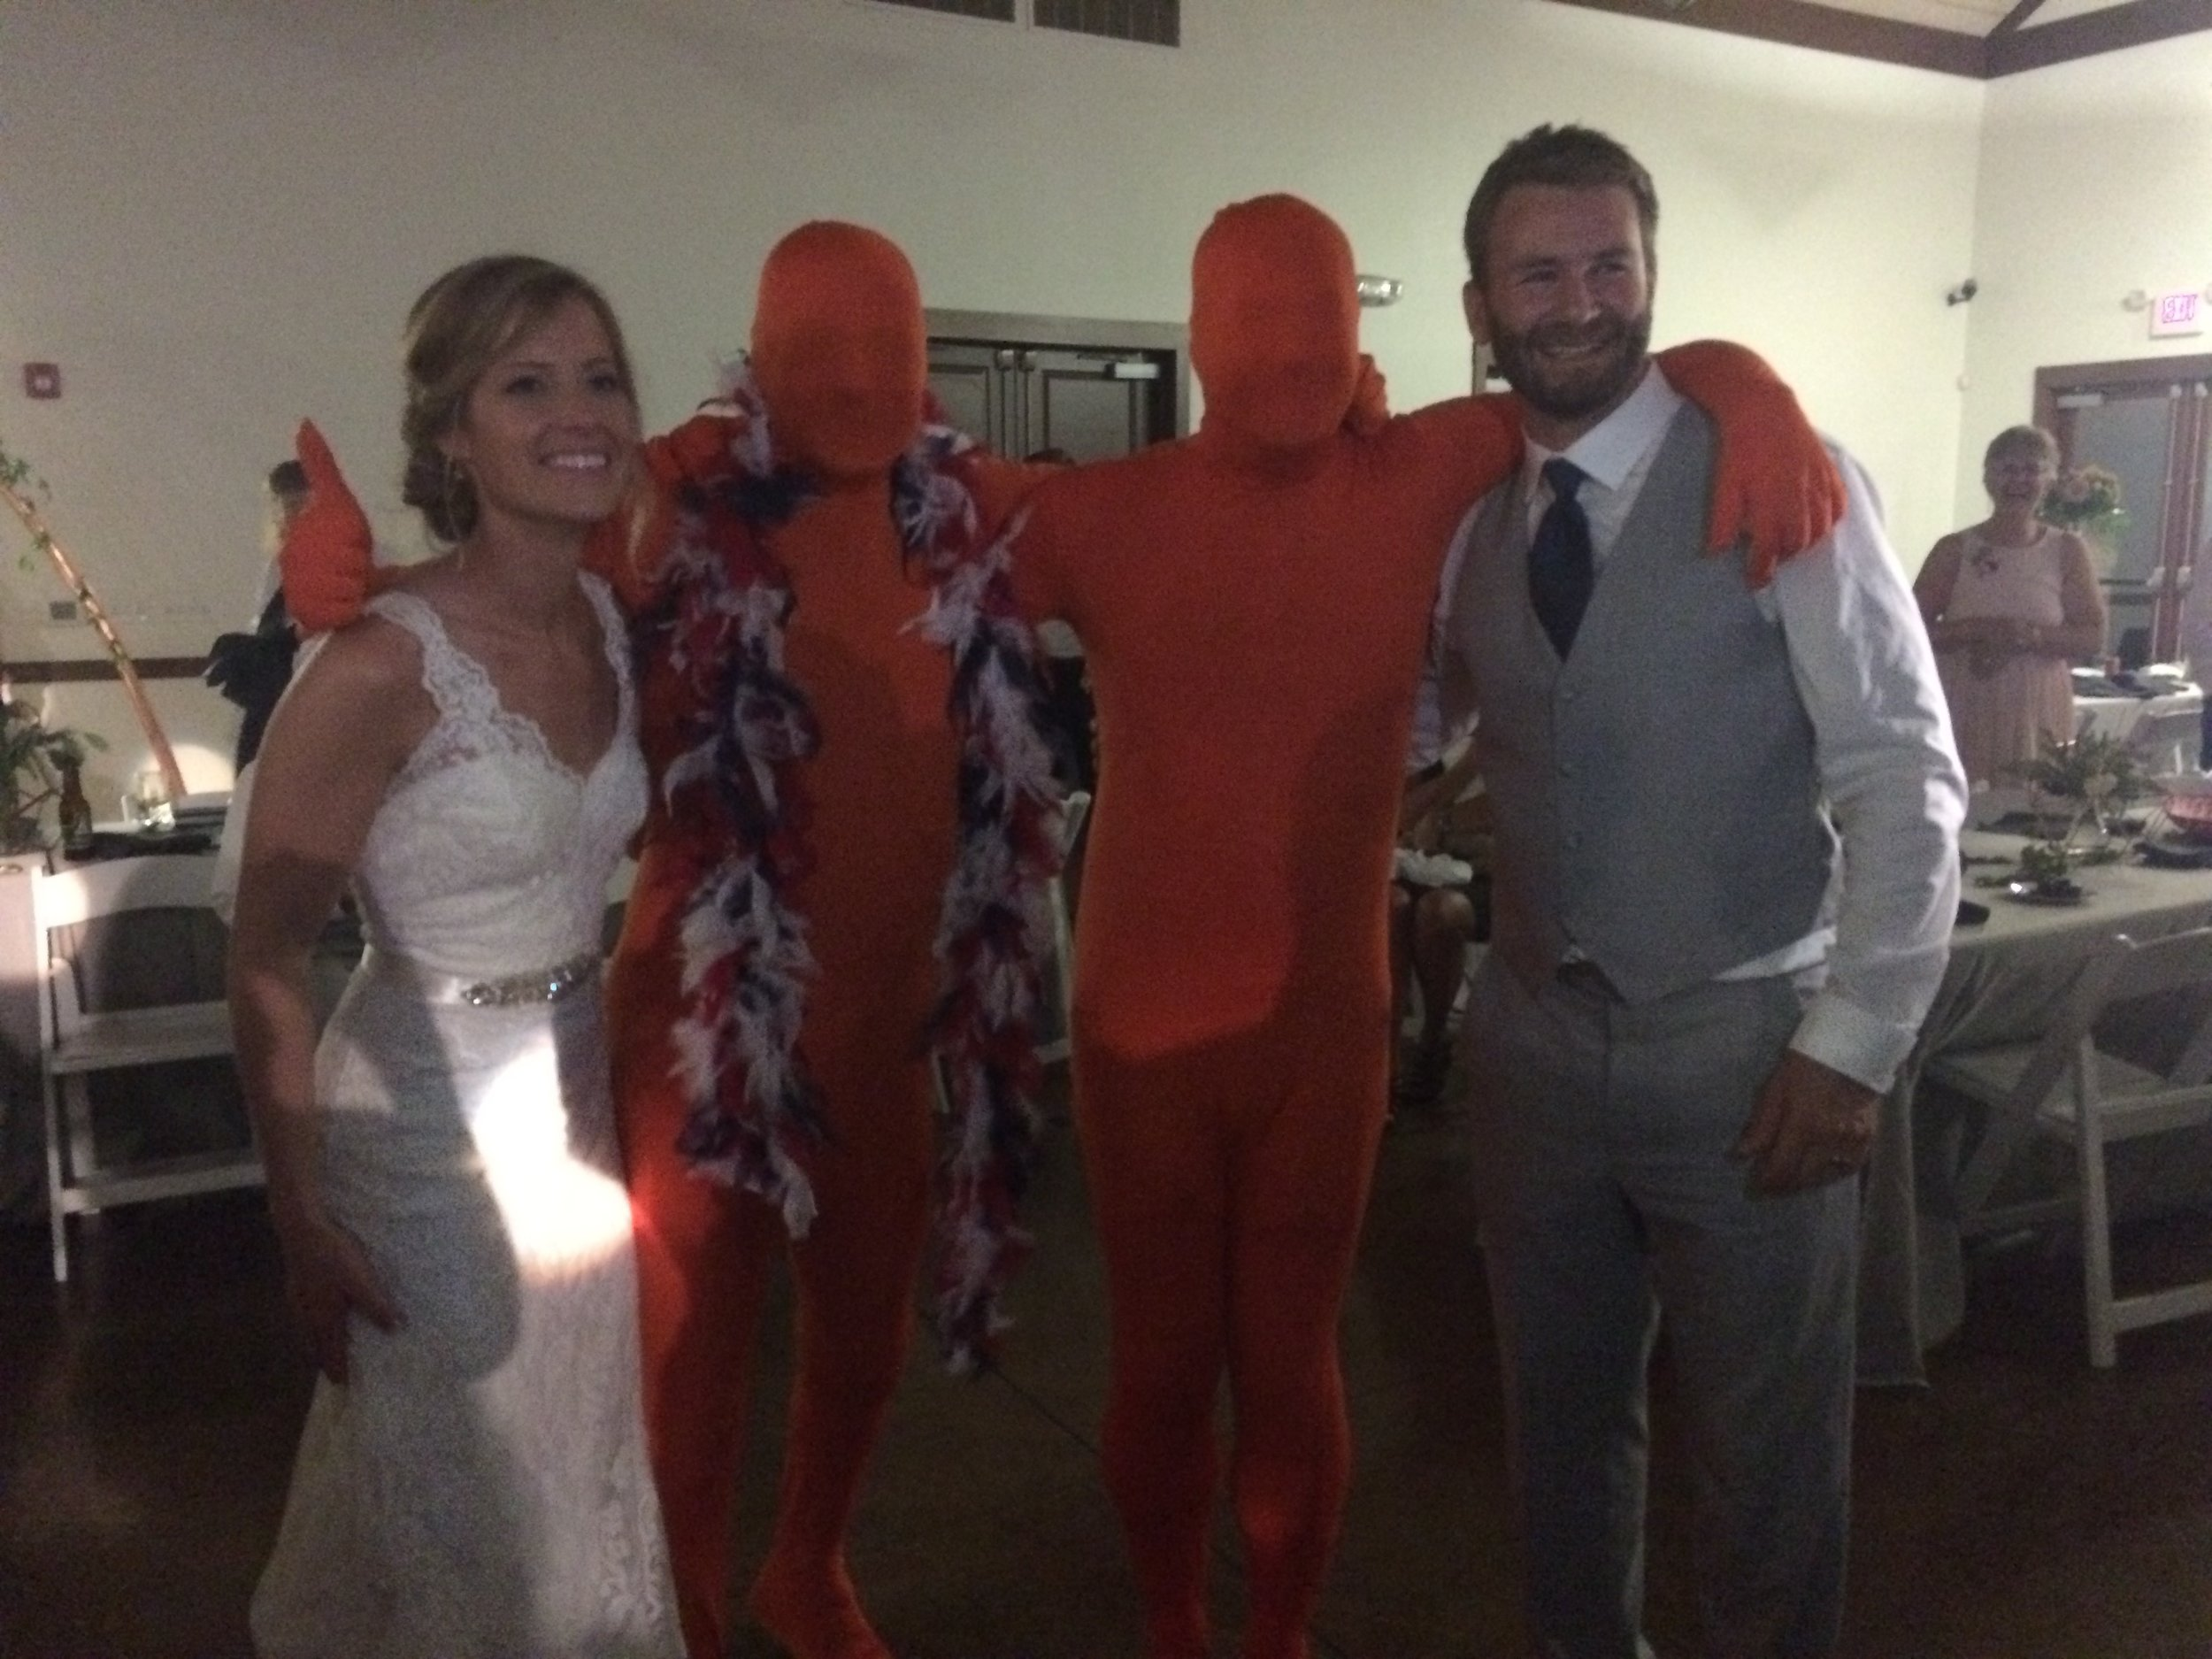 The American's challenged the Internationals to a dance off, so we pulled out our secret weapon, the orange men, and easily won. (Orange men's names will not be disclosed.) Photo above with the lovely couple, Jenn and Mark.